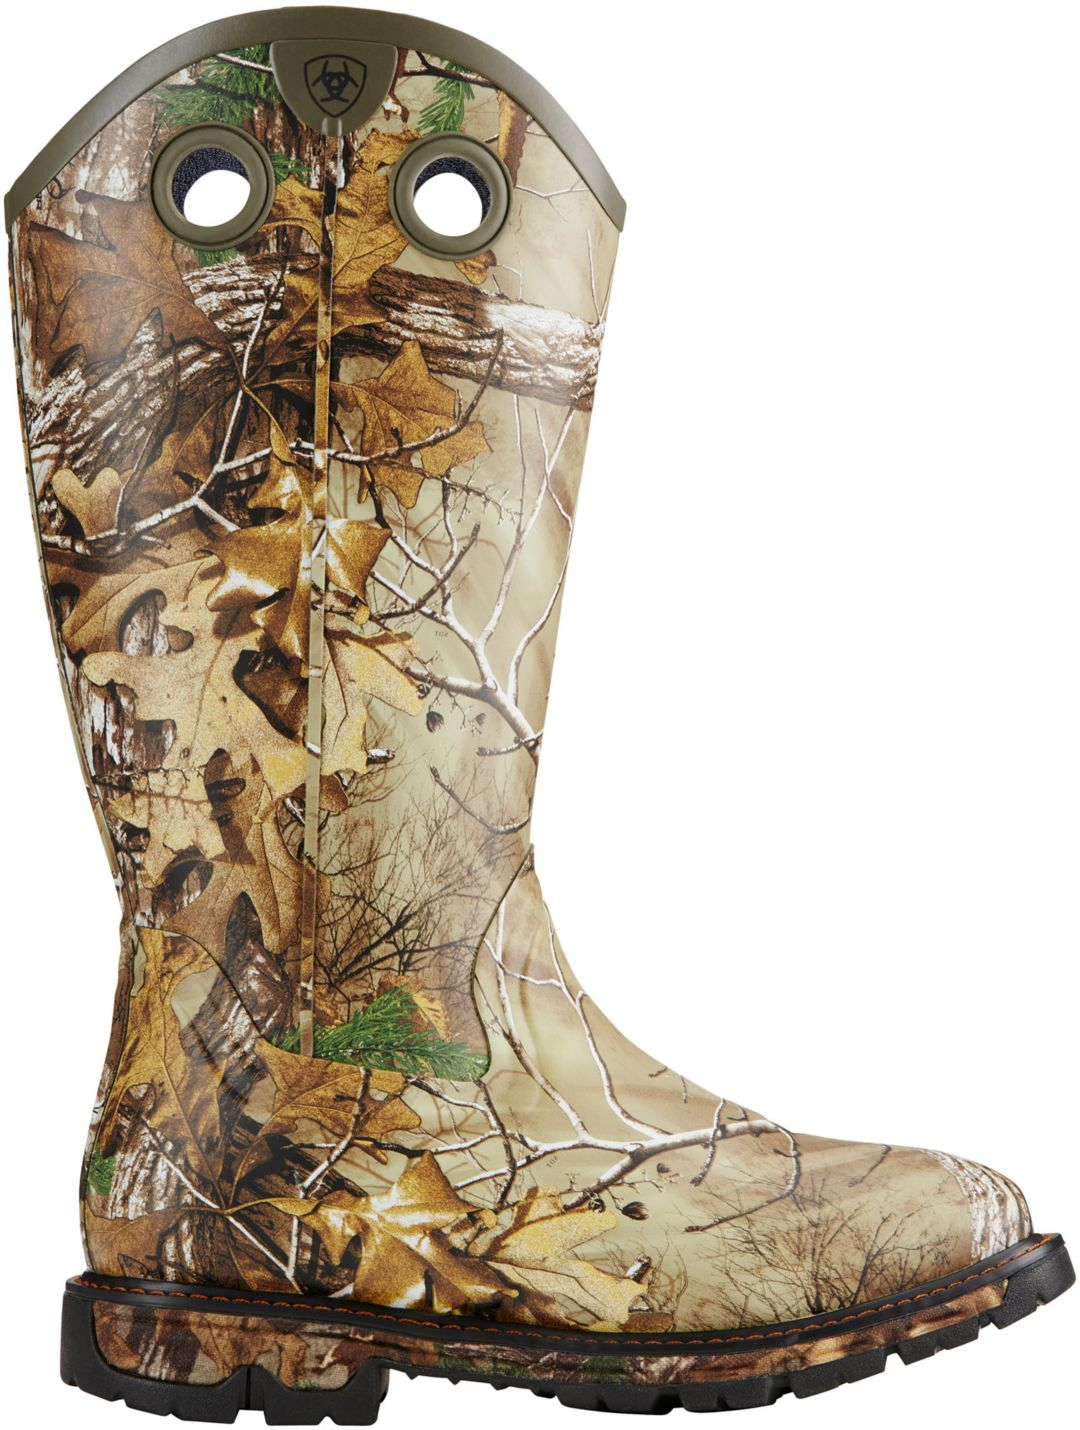 5b1ce90e86631 Ariat Men's Conquest Rubber Square Toe Hunting Boots | DICK'S ...